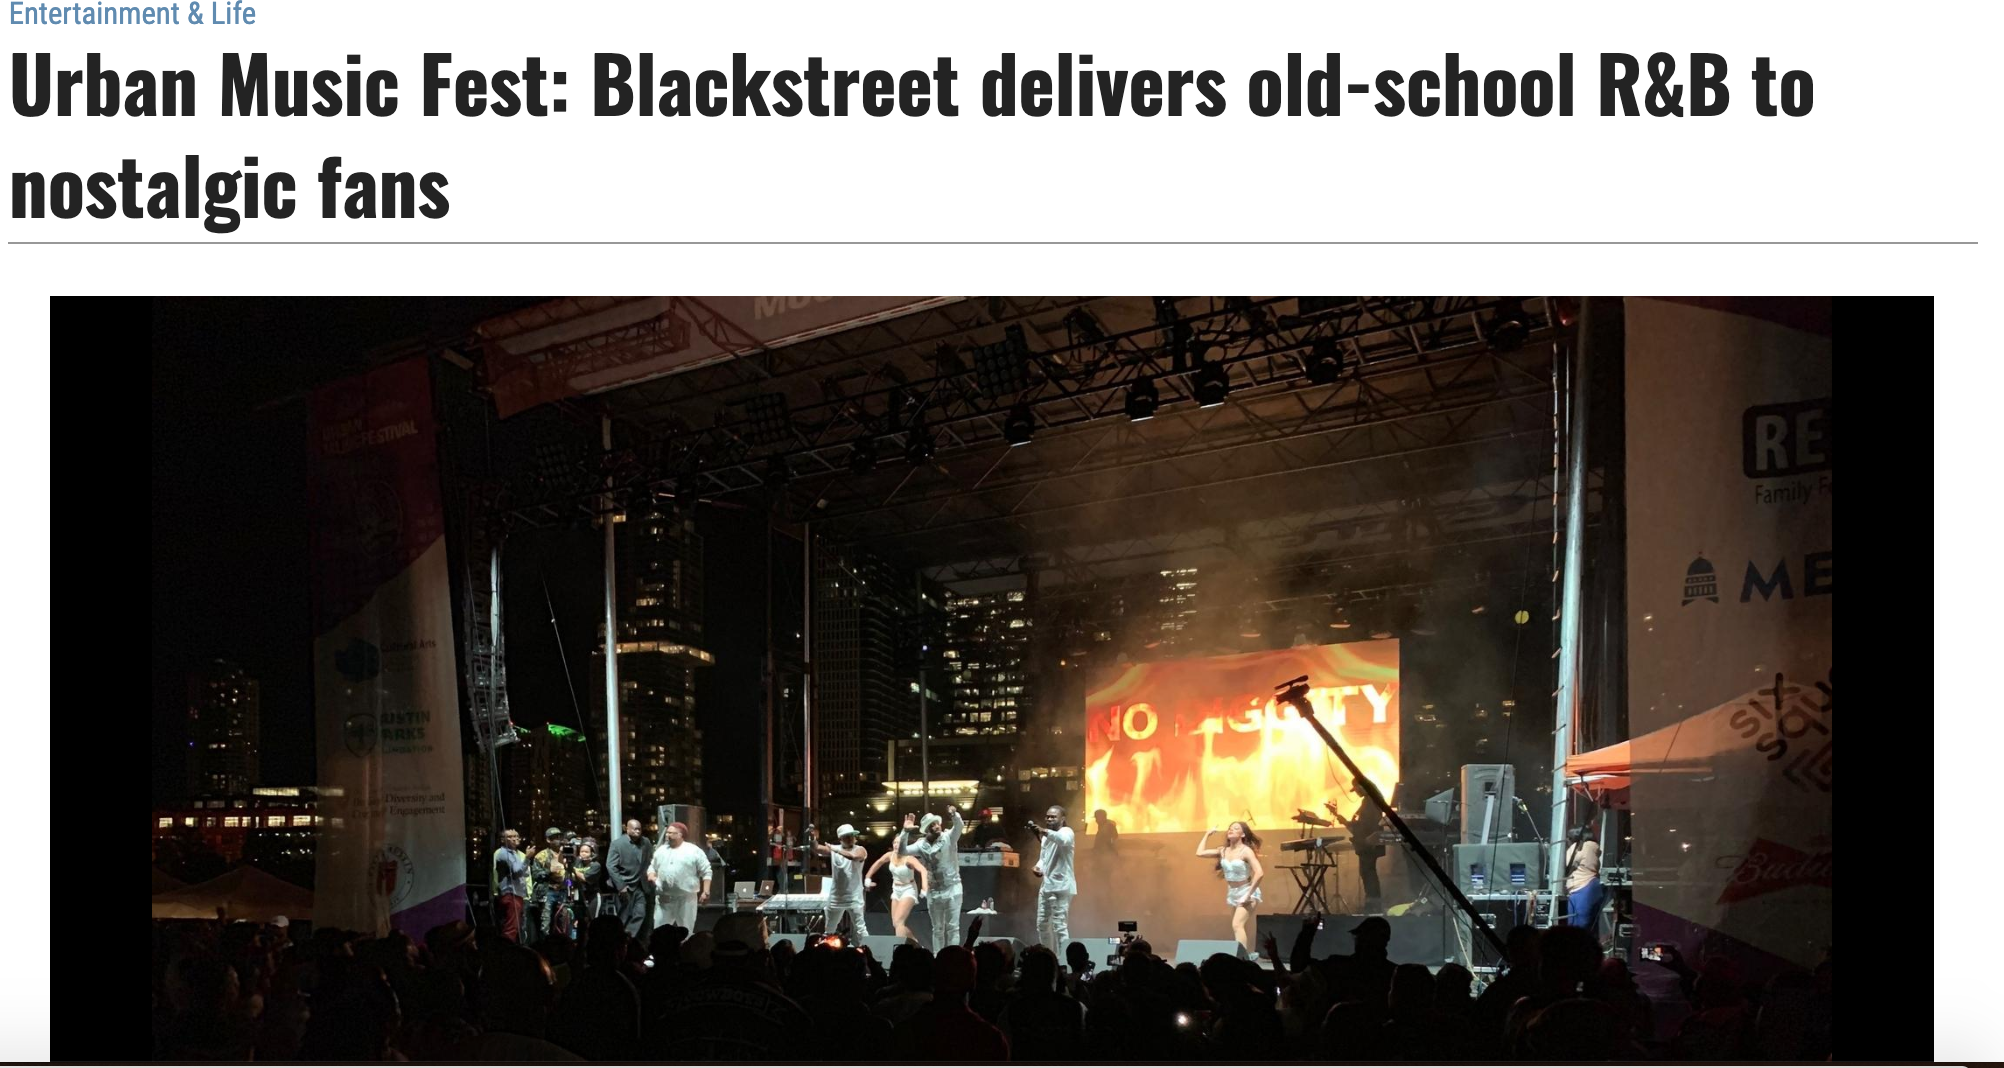 Urban Music Fest: Blackstreet delivers old-school R&B to nostalgic fans